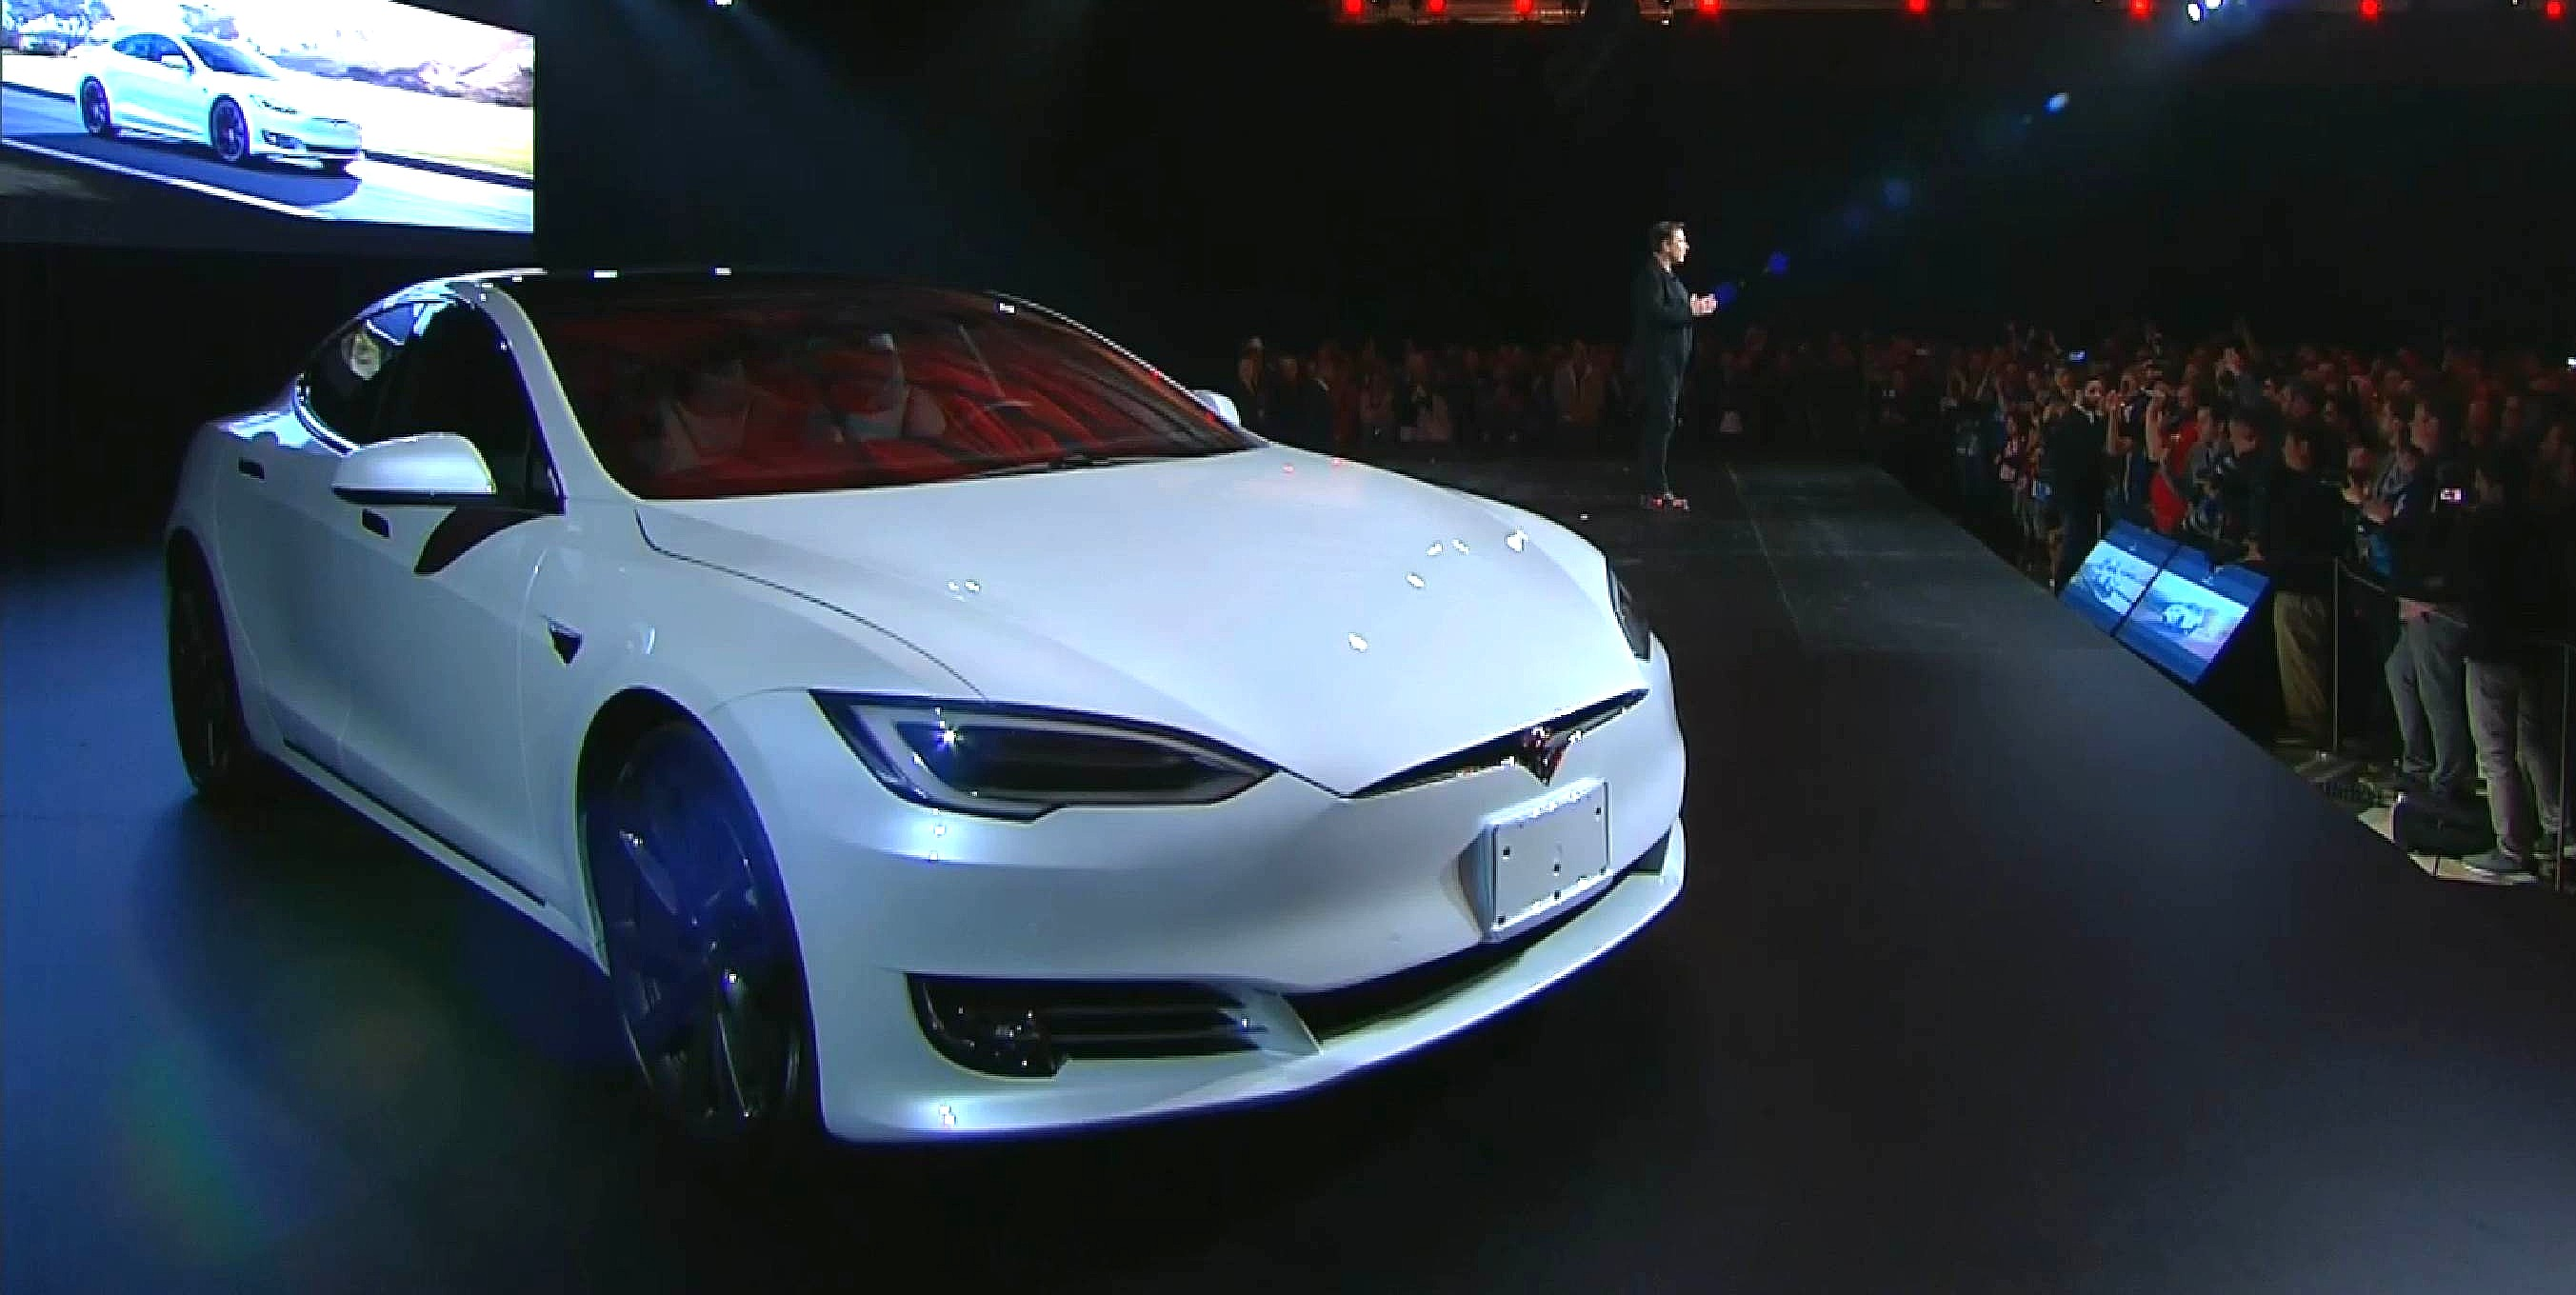 Model-Y-event-Elon-Musk-and-Model-S-Tesla-1a (1)